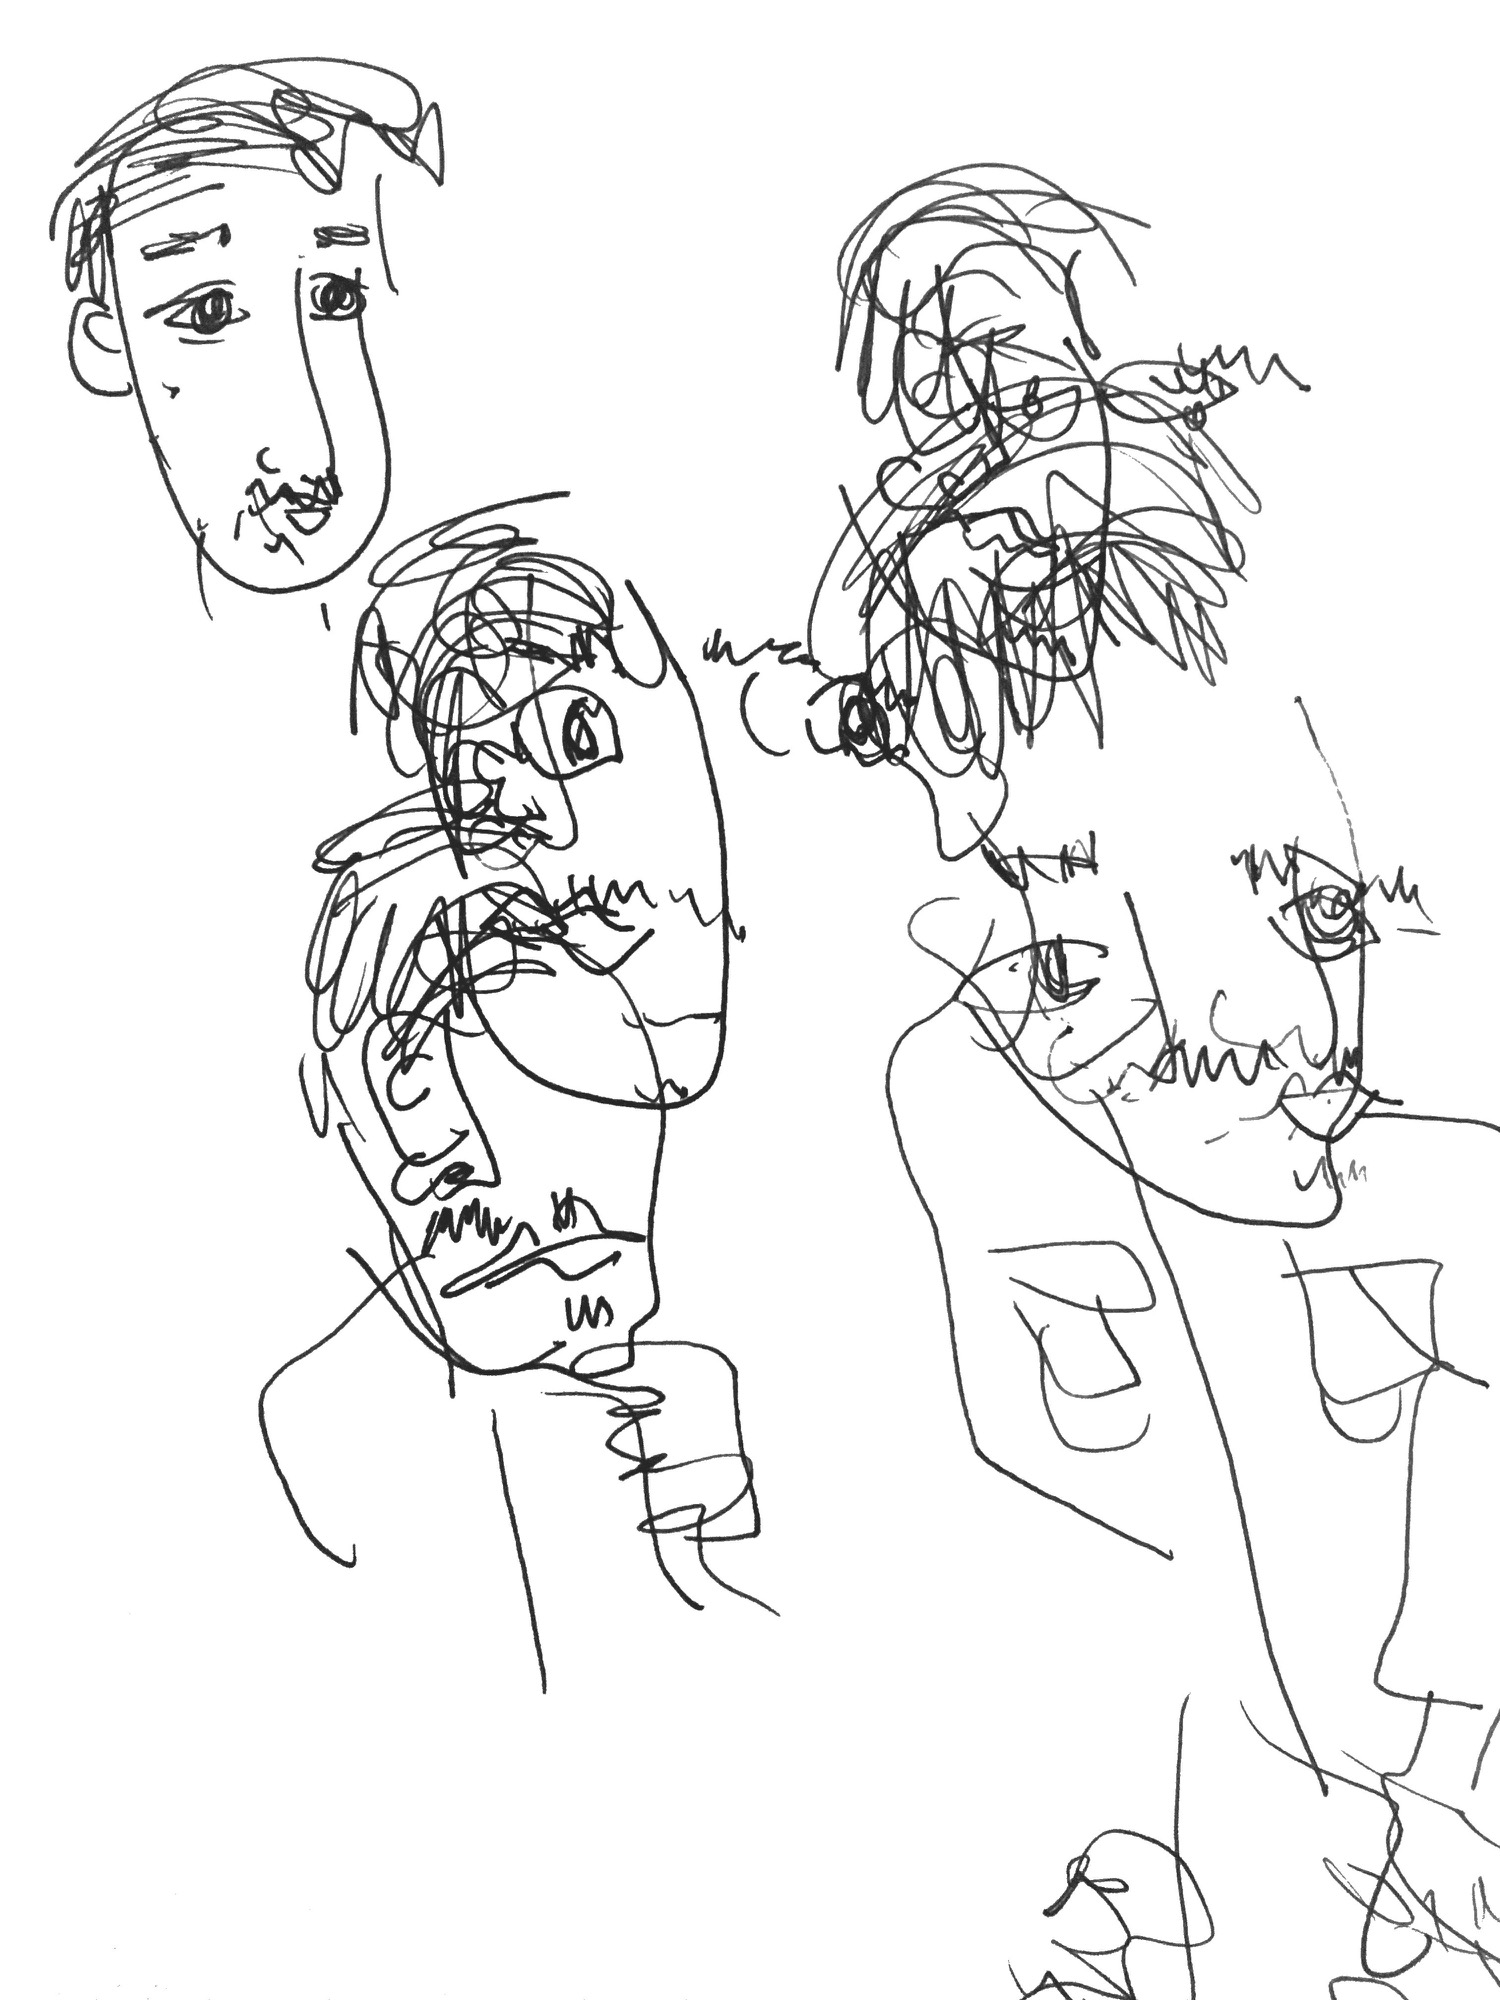 Future likes shapes and is still a mystery to me. His name isn't really Future but I feel like he's from the future. The top left image was a quick sketch after the blind session.